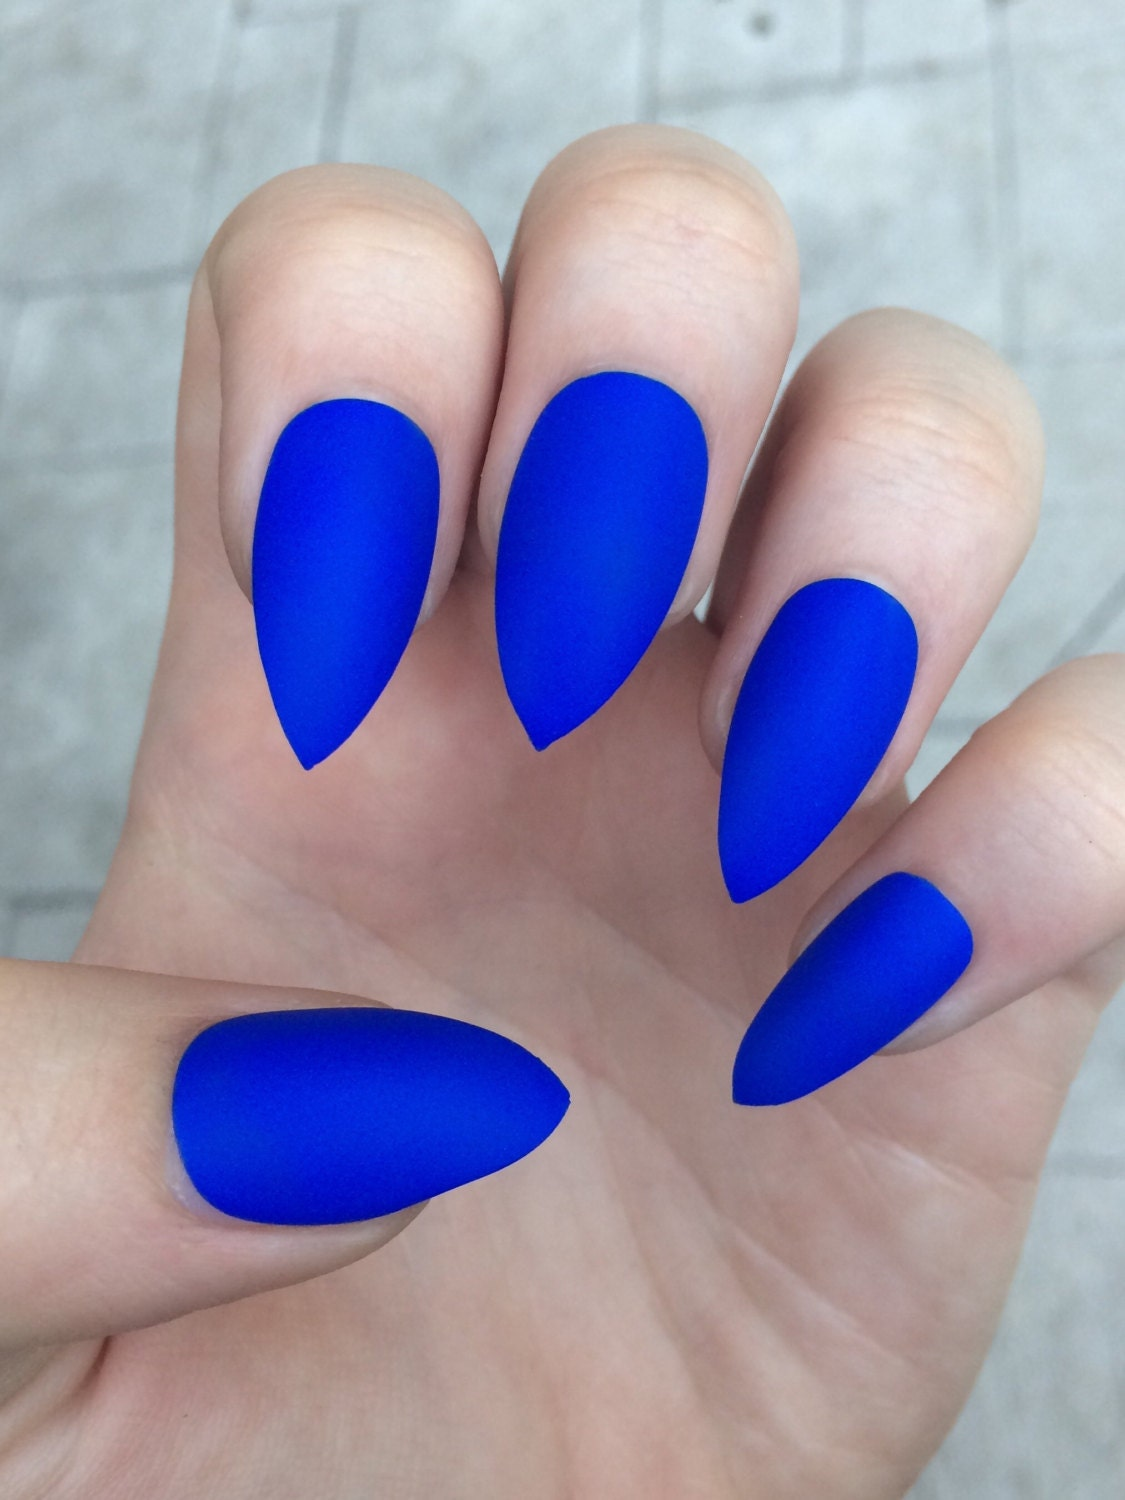 Stiletto Nails Fake Nails Matte Nails Blue Press On Nails: Stiletto Nails Fake Nails Matte Nails Blue Press On Nails